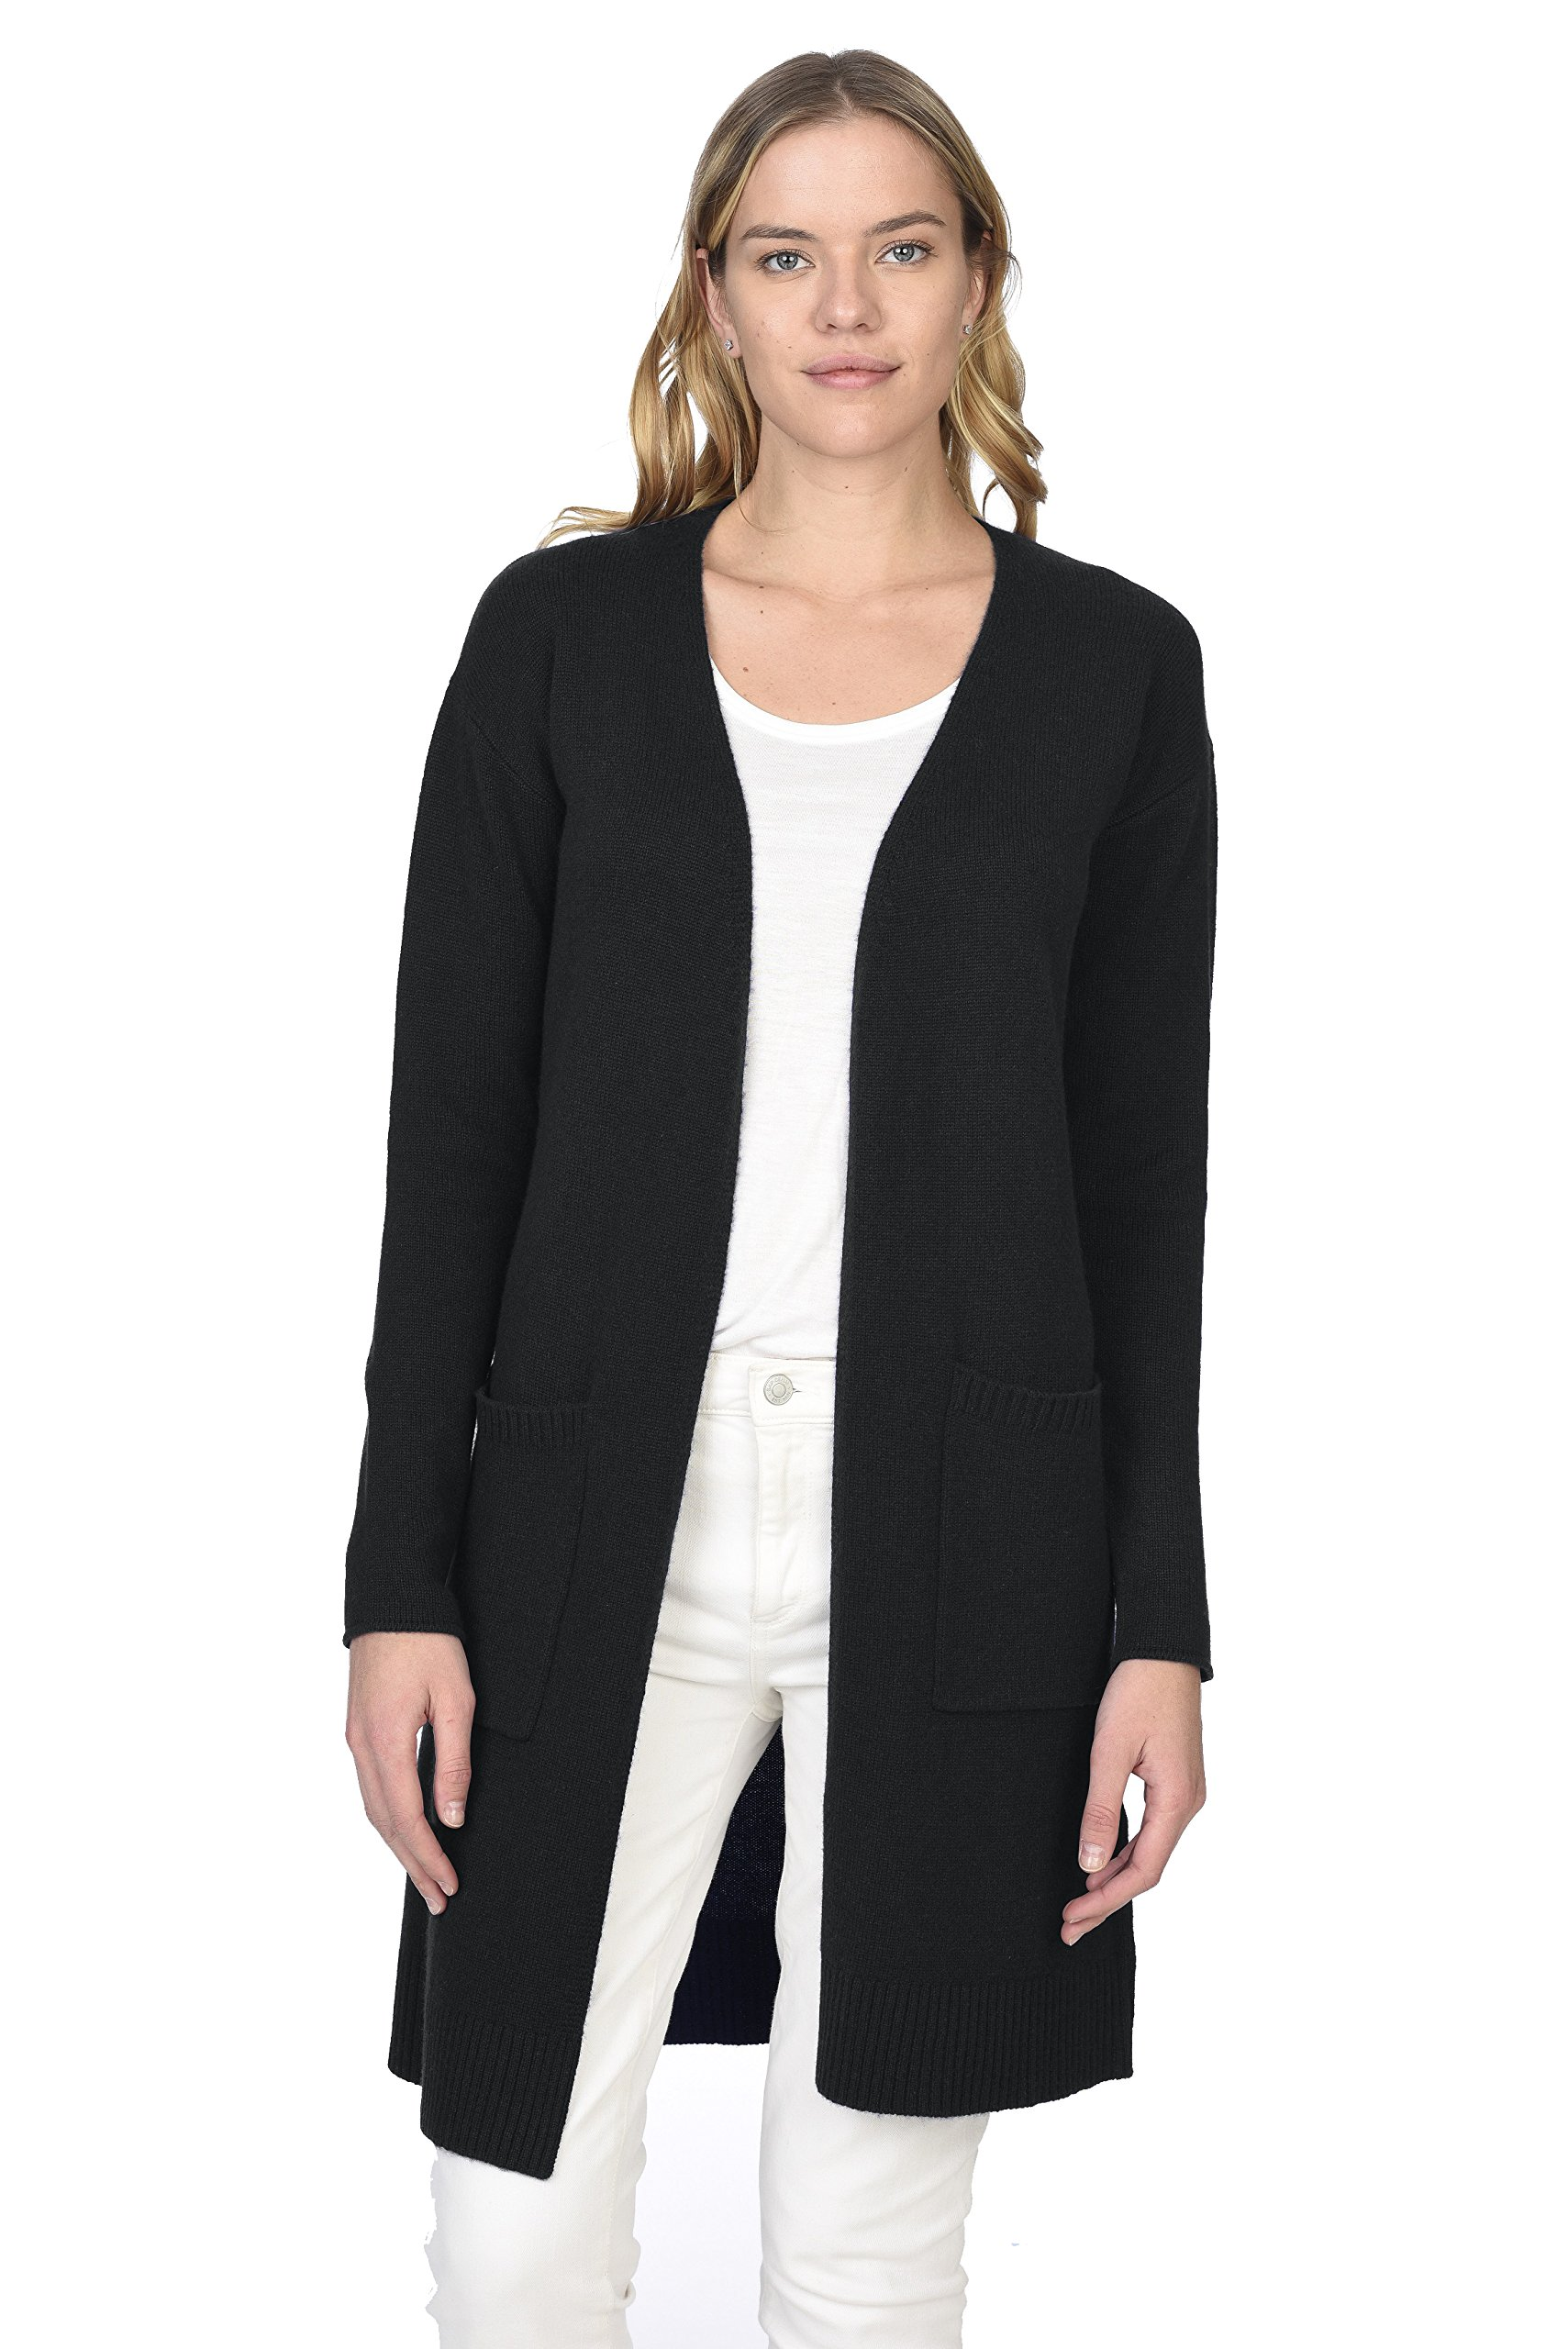 State Cashmere Women's 100% Pure Cashmere Open Front Long Cardigan